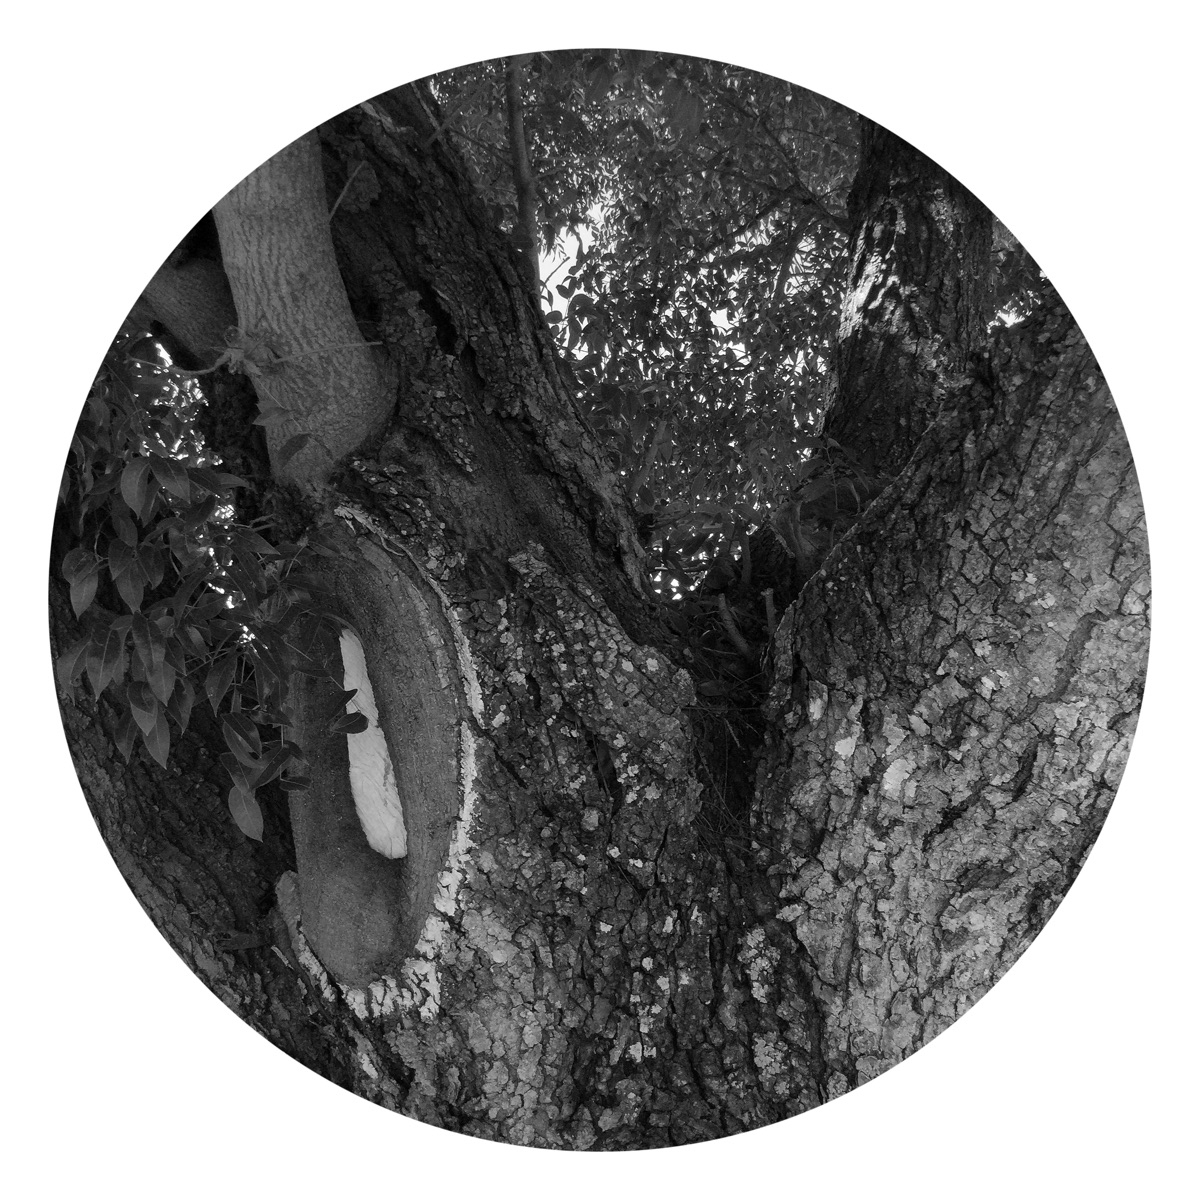 Tree Trunk Backyard Apps - mikefl99 - mikefl99 | ello